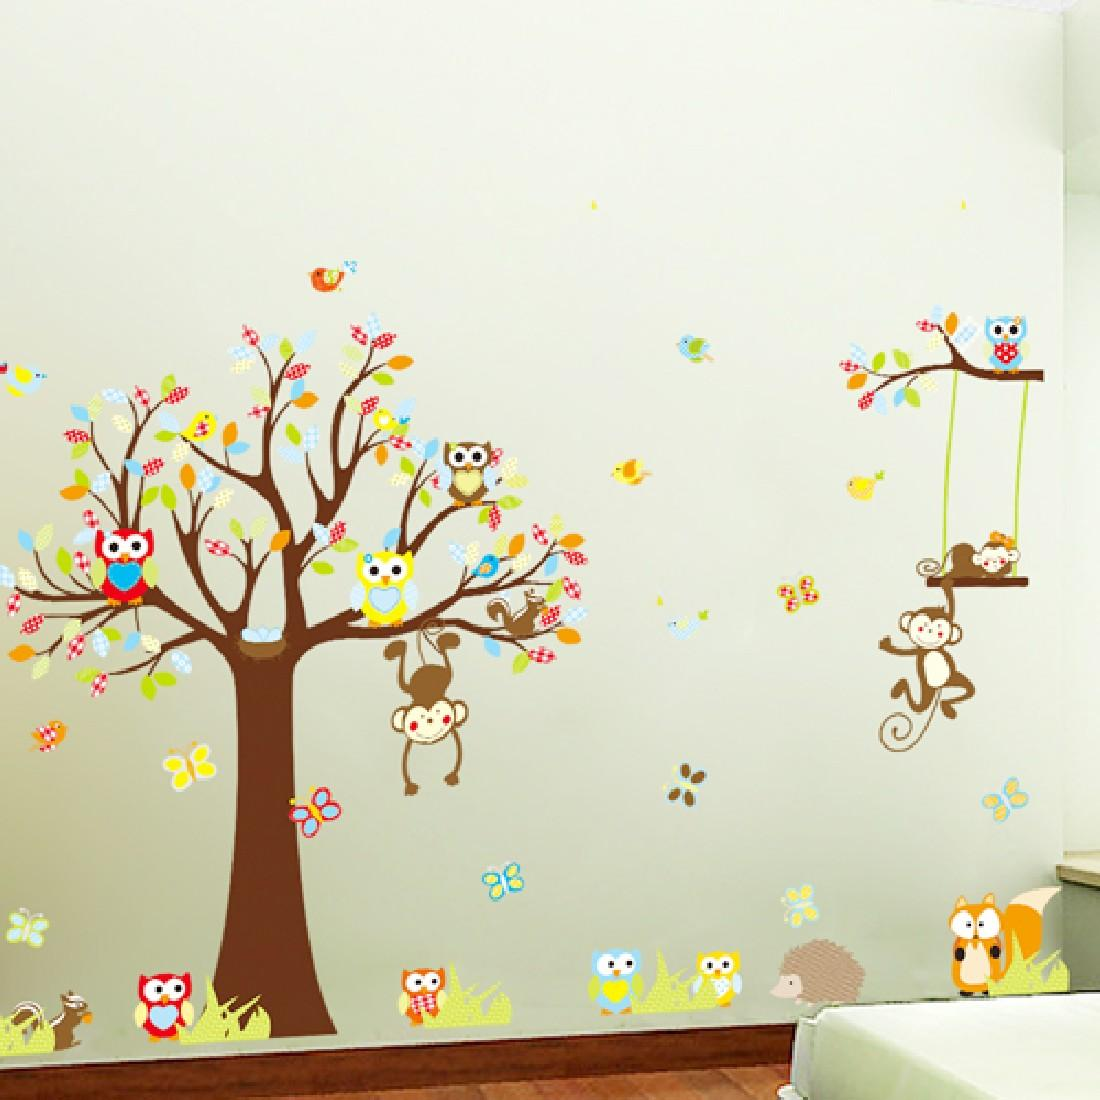 Wall stickers Wall Decal Removable kid Art Green/Colorful tree Monkey Cute Owl Owl monkey tree Owl branch Home Mural Decor